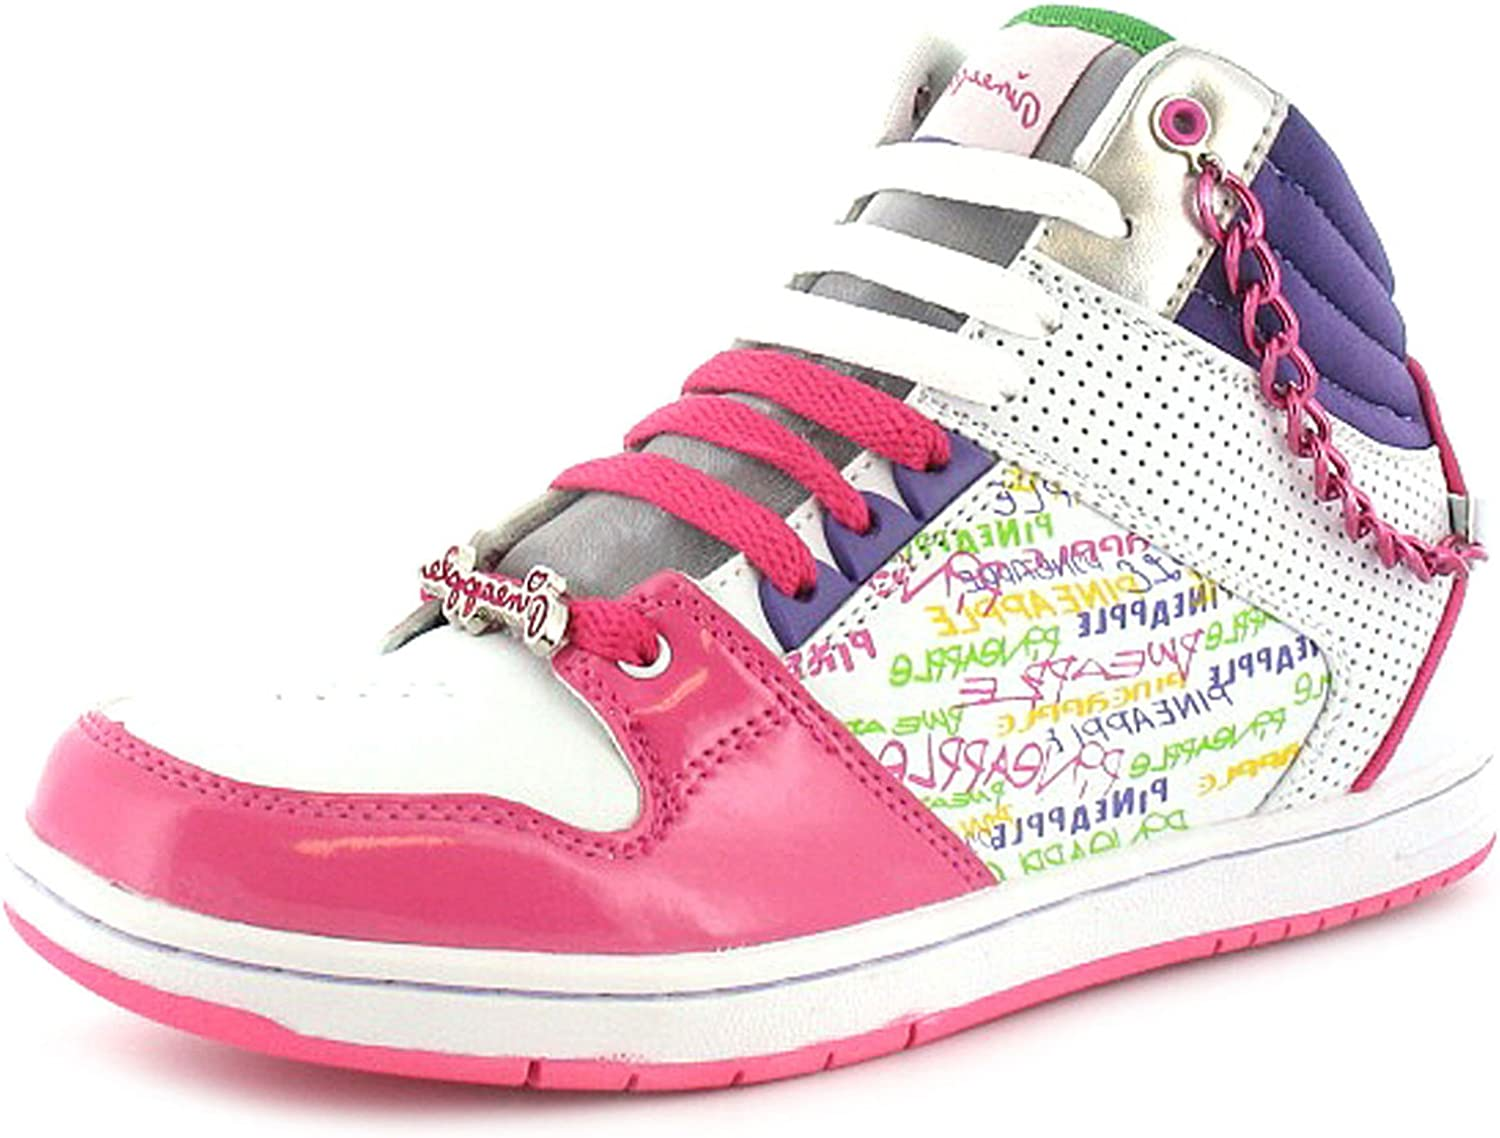 Cut Trainers. - White/Pink - UK SIZE